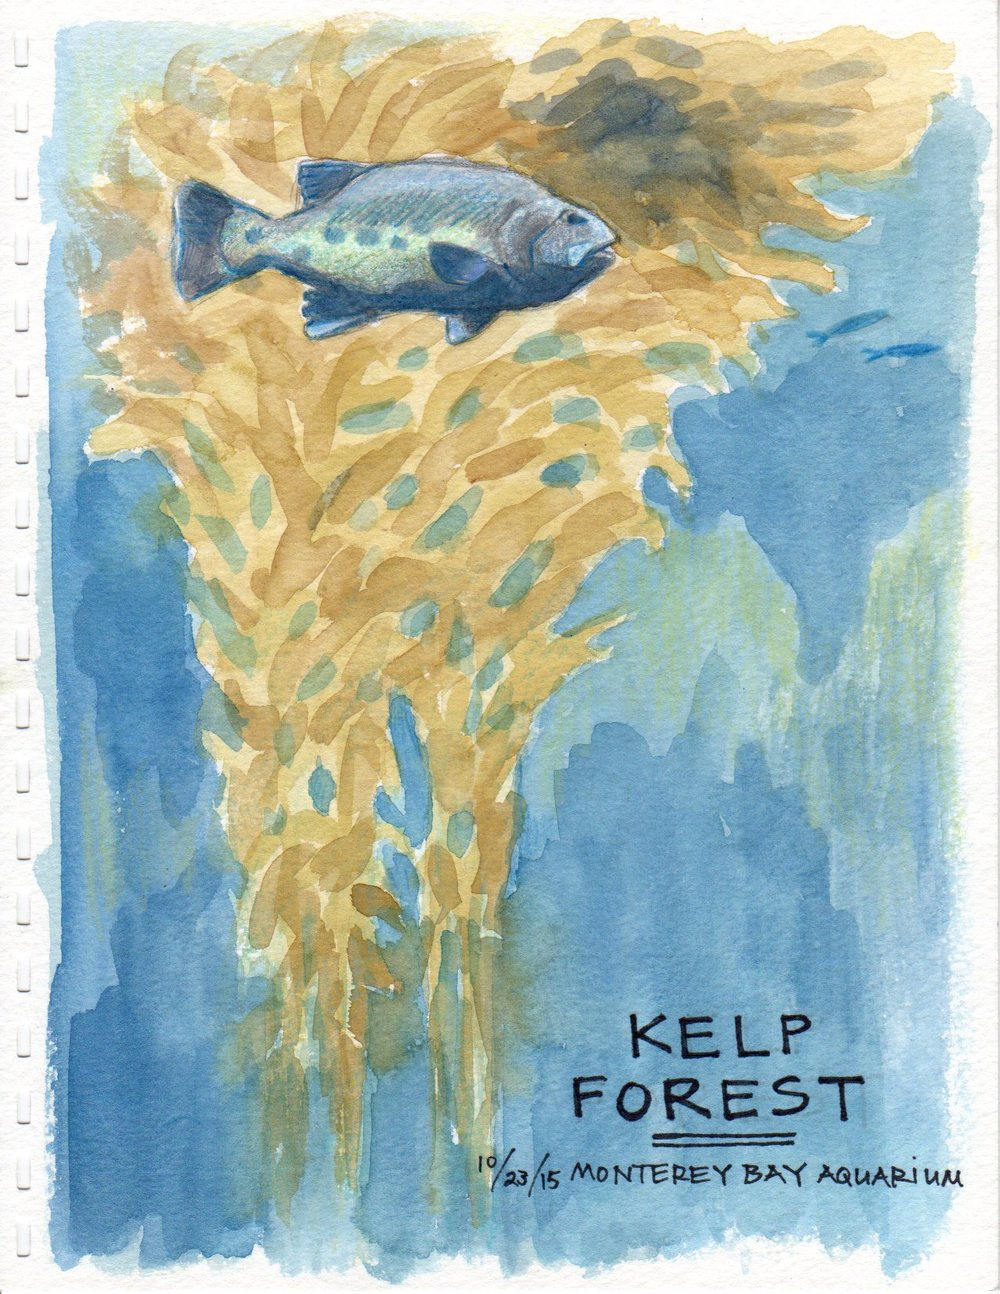 Kelp Forest (Giant sea bass)